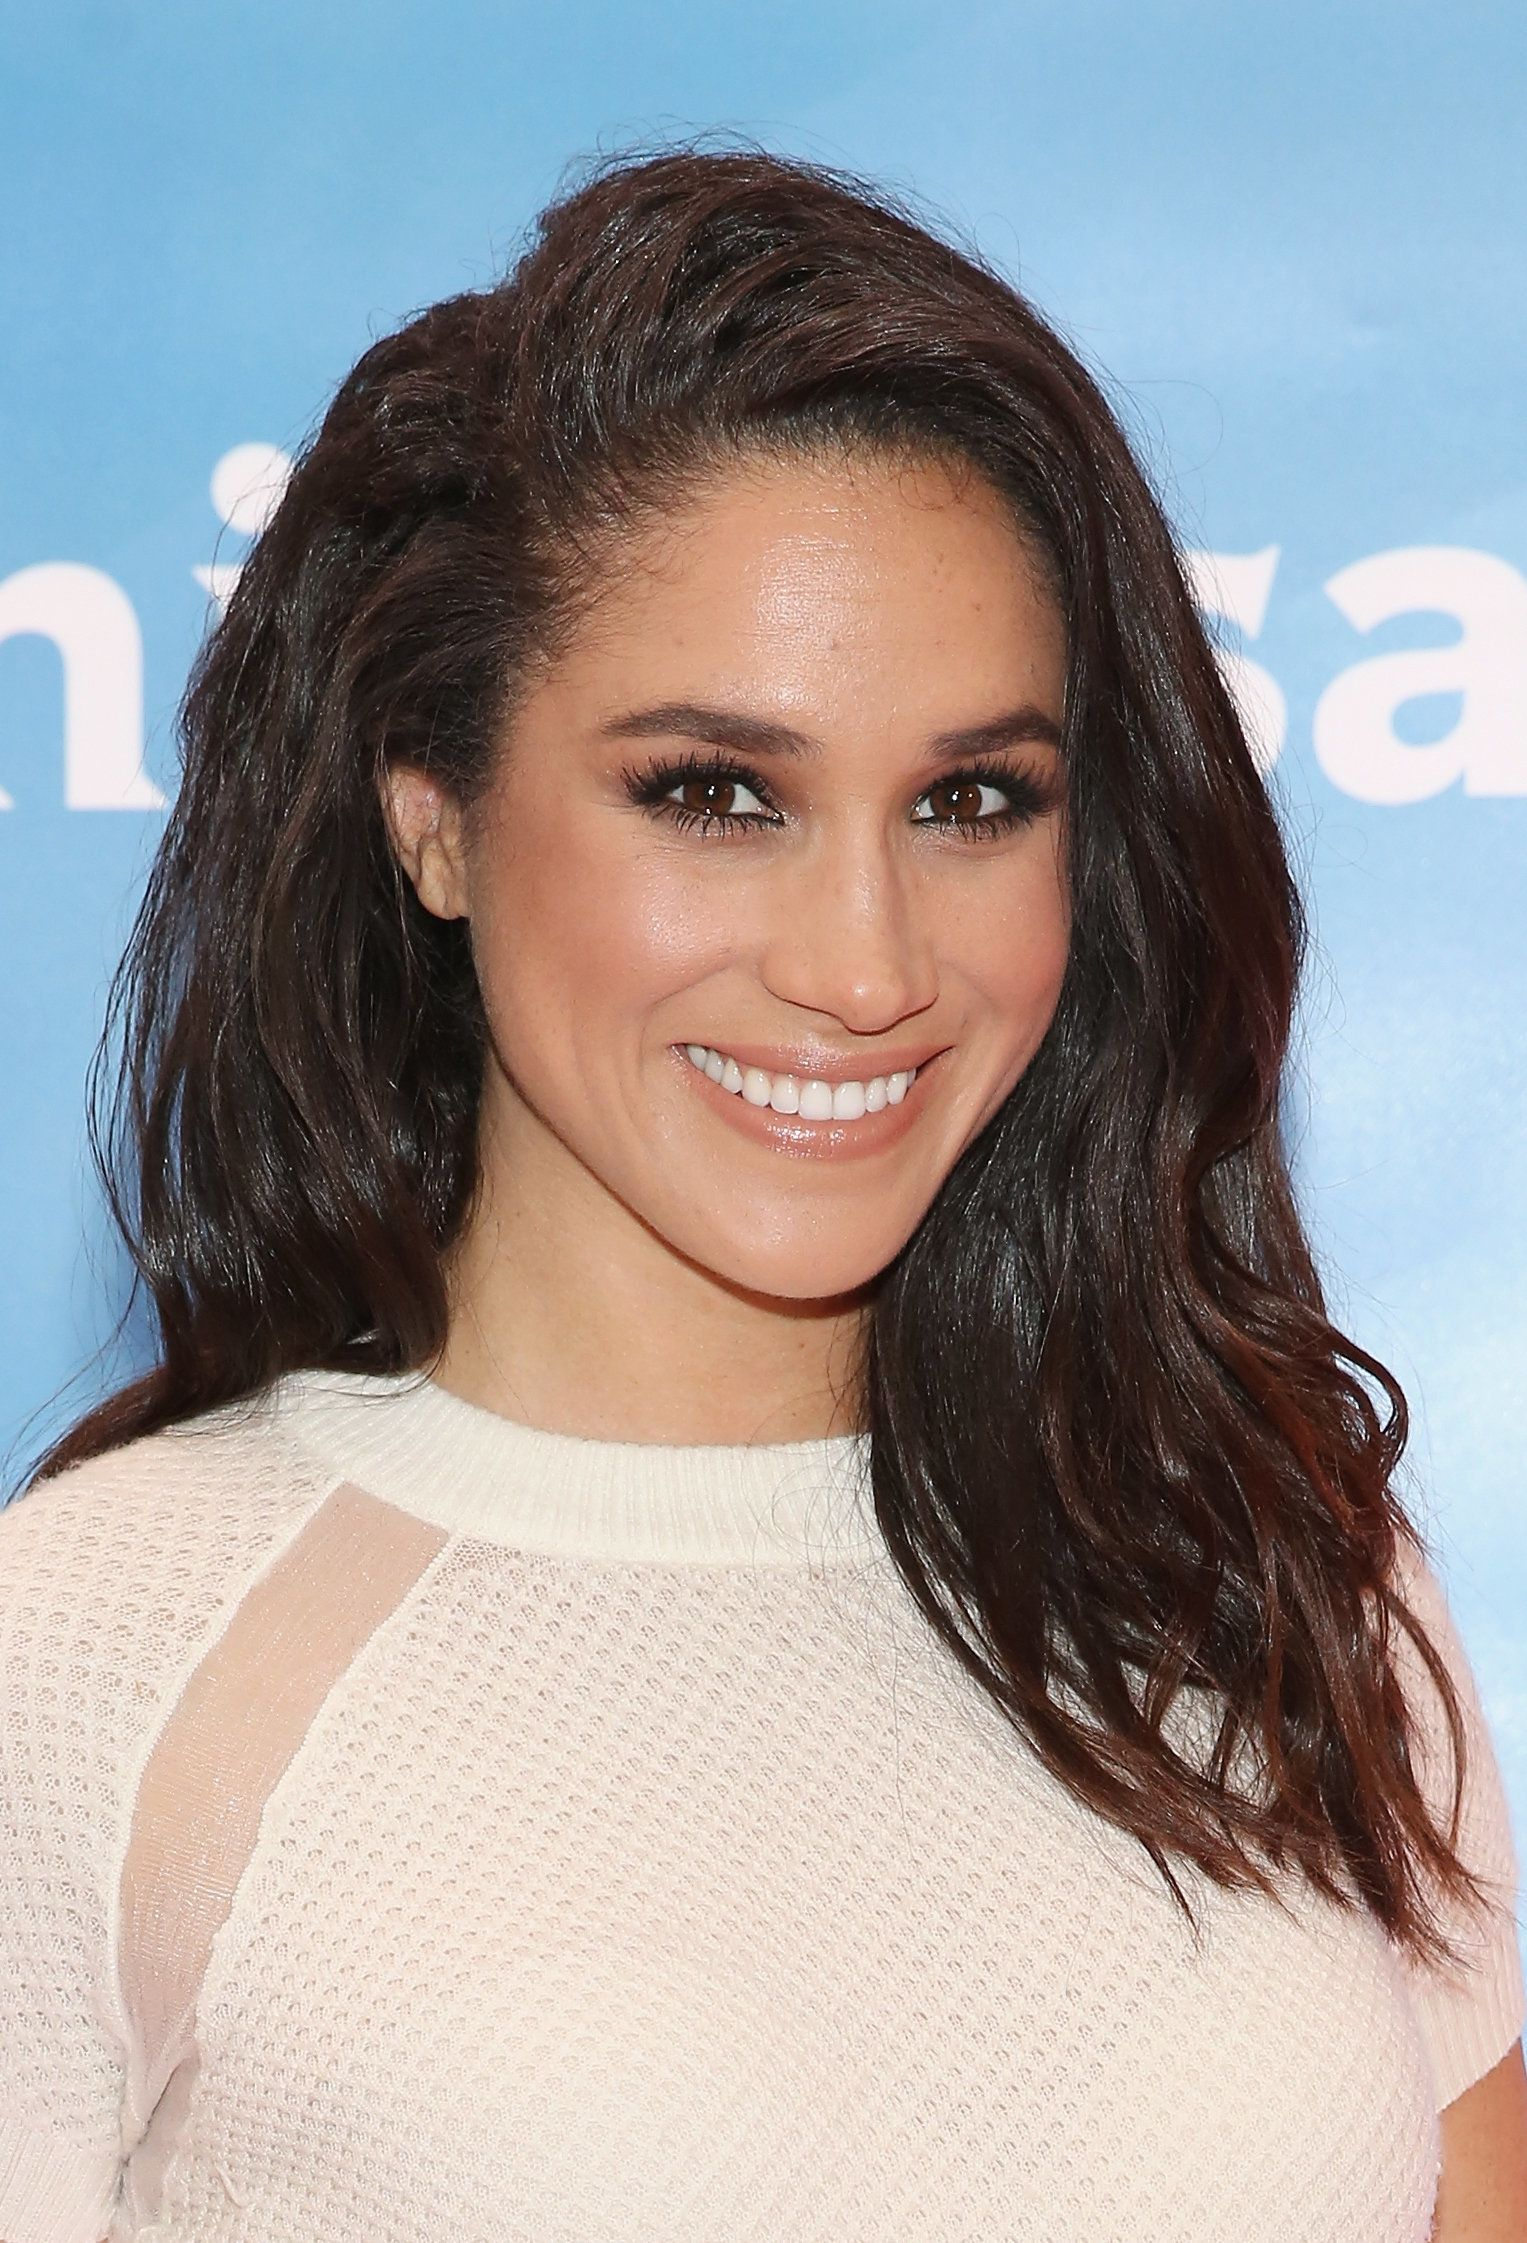 NEW YORK, NY - JUNE 24:  Actress Meghan Markle attends the 2015 NBC New York Summer Press Day at Four Seasons Hotel New York on June 24, 2015 in New York City.  (Photo by Mireya Acierto/FilmMagic)